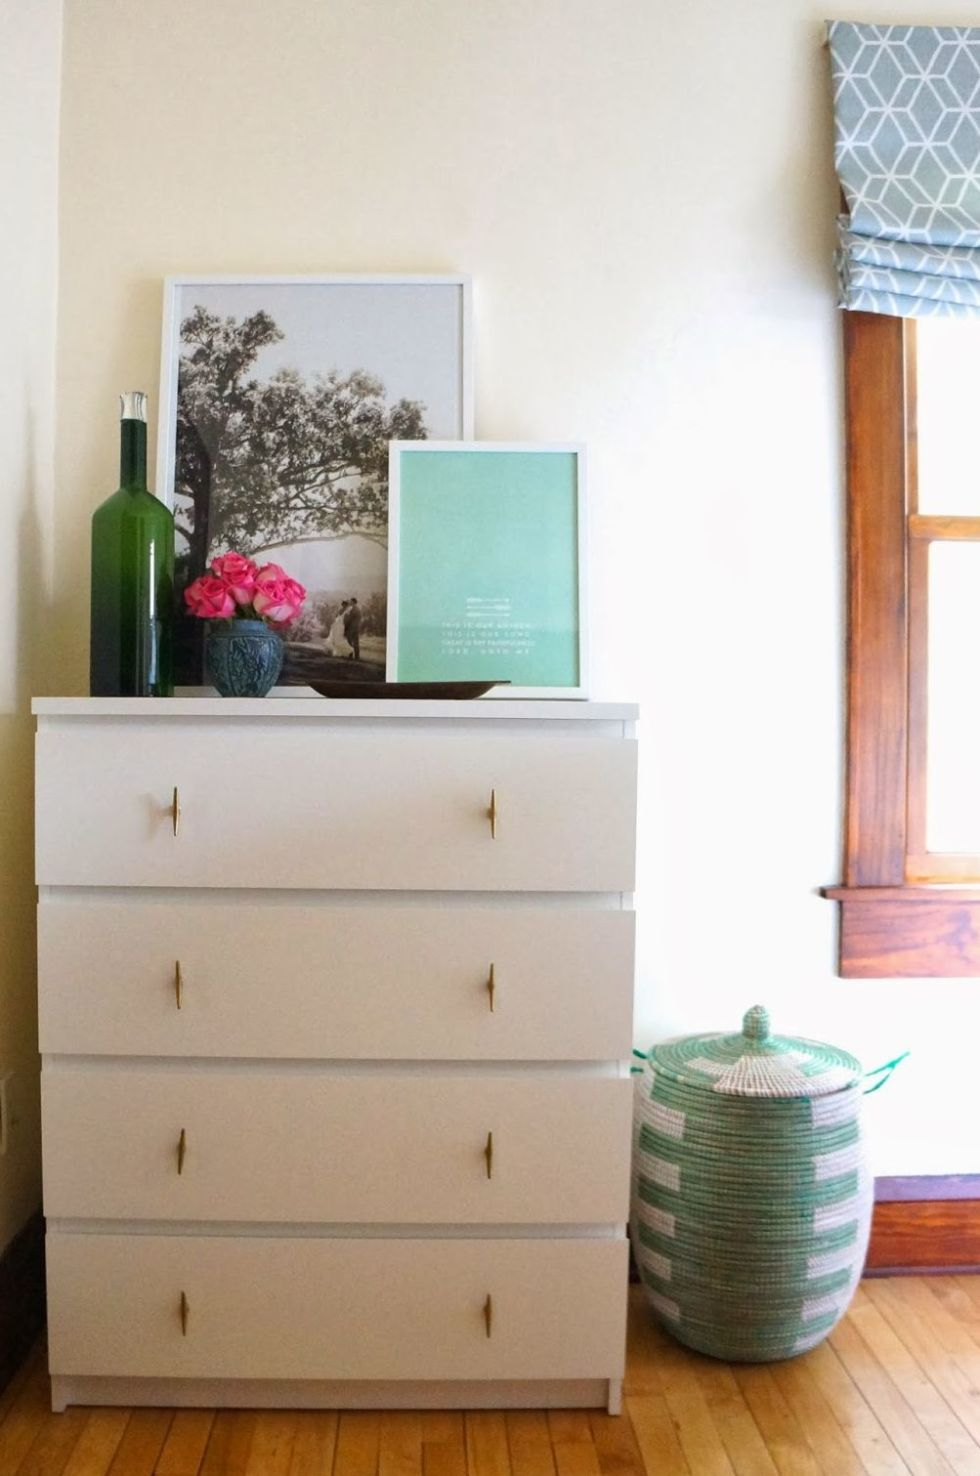 12 makeovers for the ikea dresser everyone owns ikea malm dresser ikea malm and malm. Black Bedroom Furniture Sets. Home Design Ideas